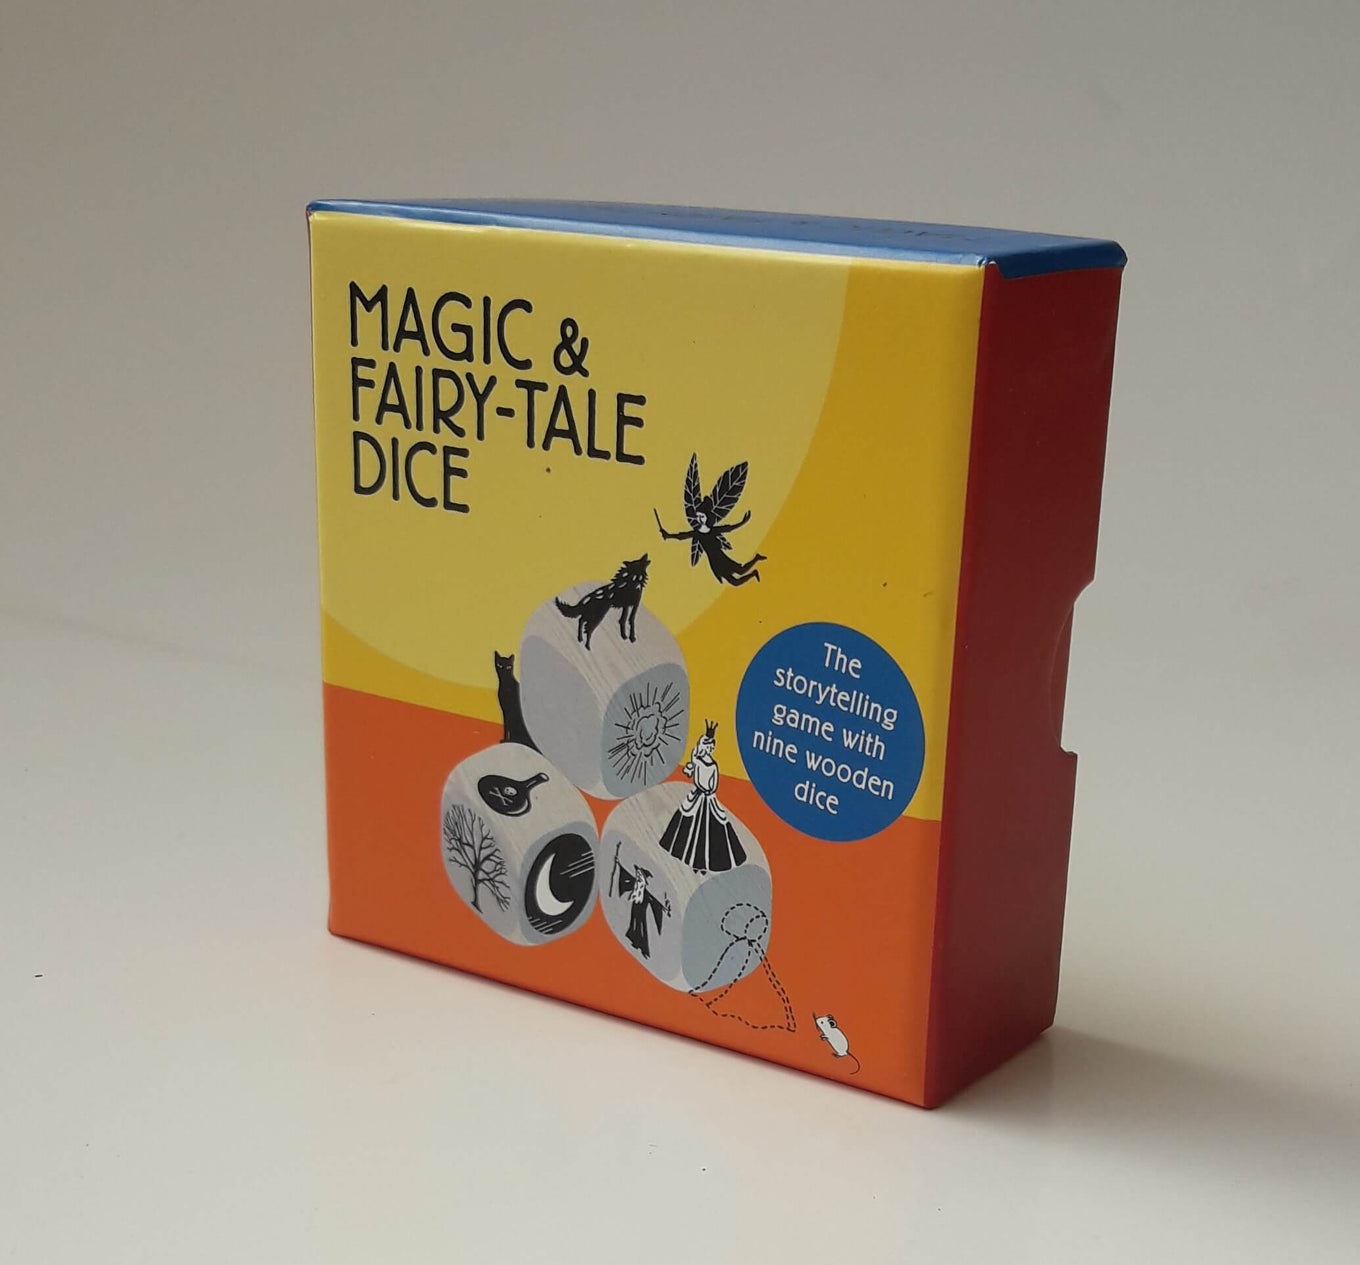 Magic & Fairytale Dice